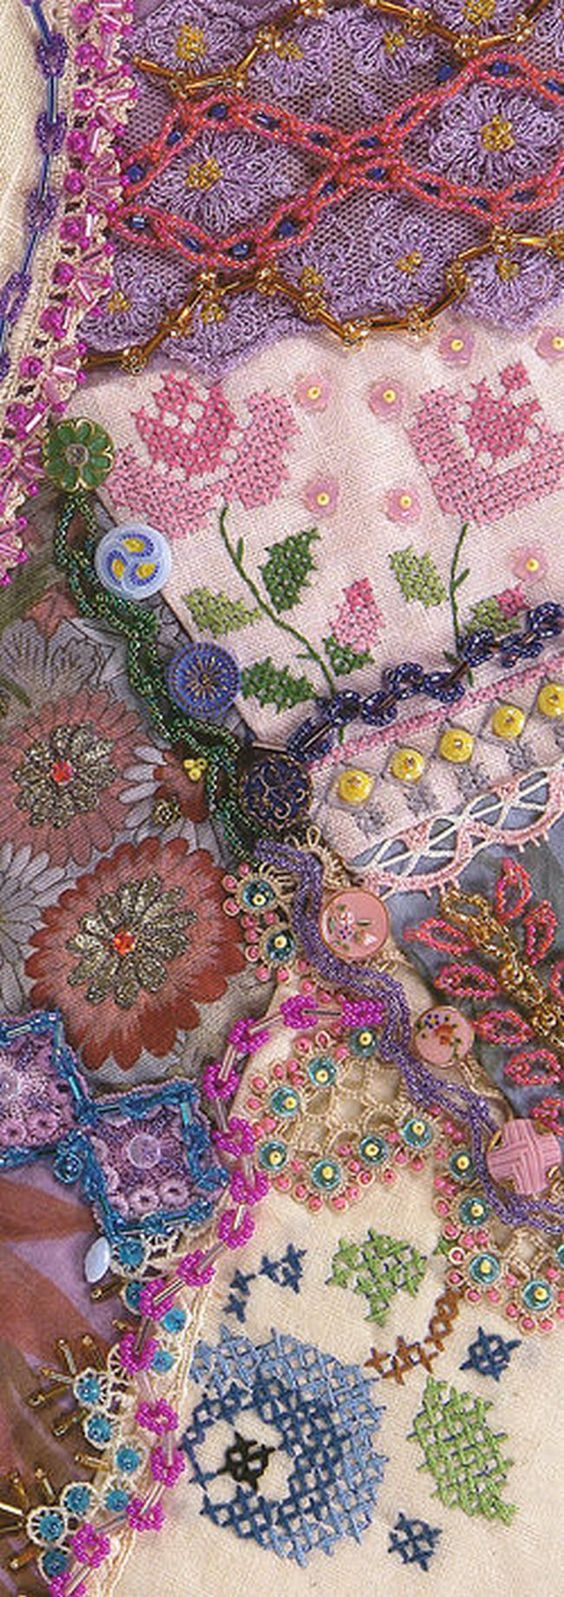 I ❤ crazy quilting & embroidery . . .  ~By Nancy Eha/fascinating bead work: